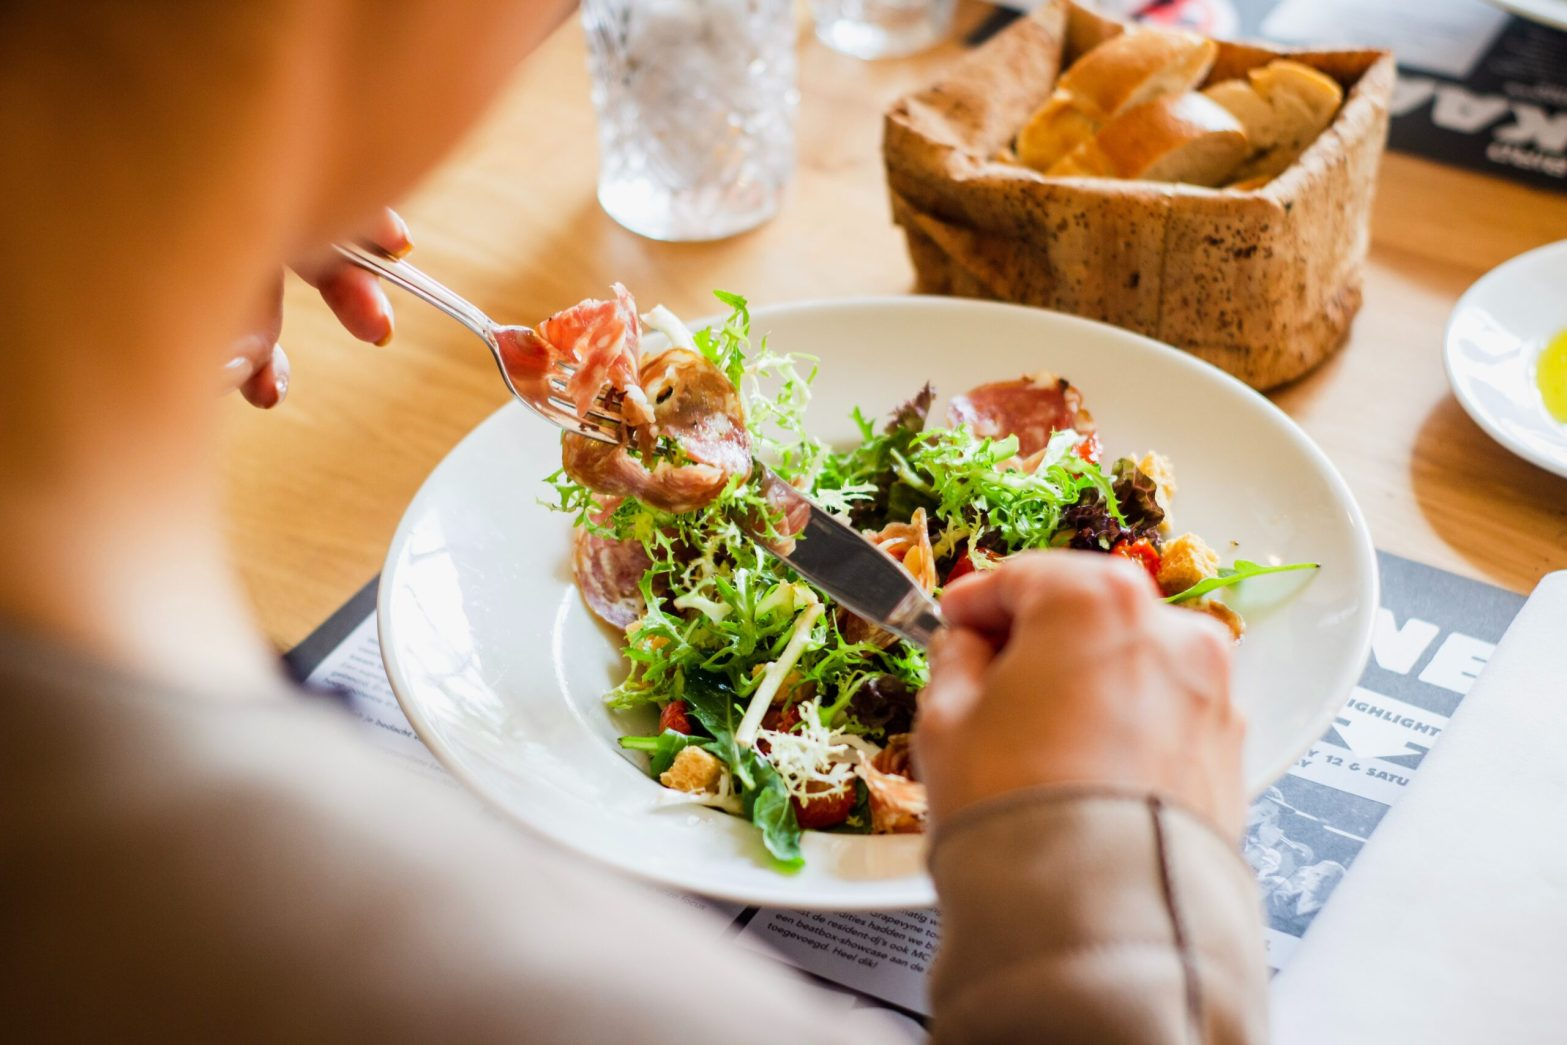 A person eating a salad. Fad diet myths.